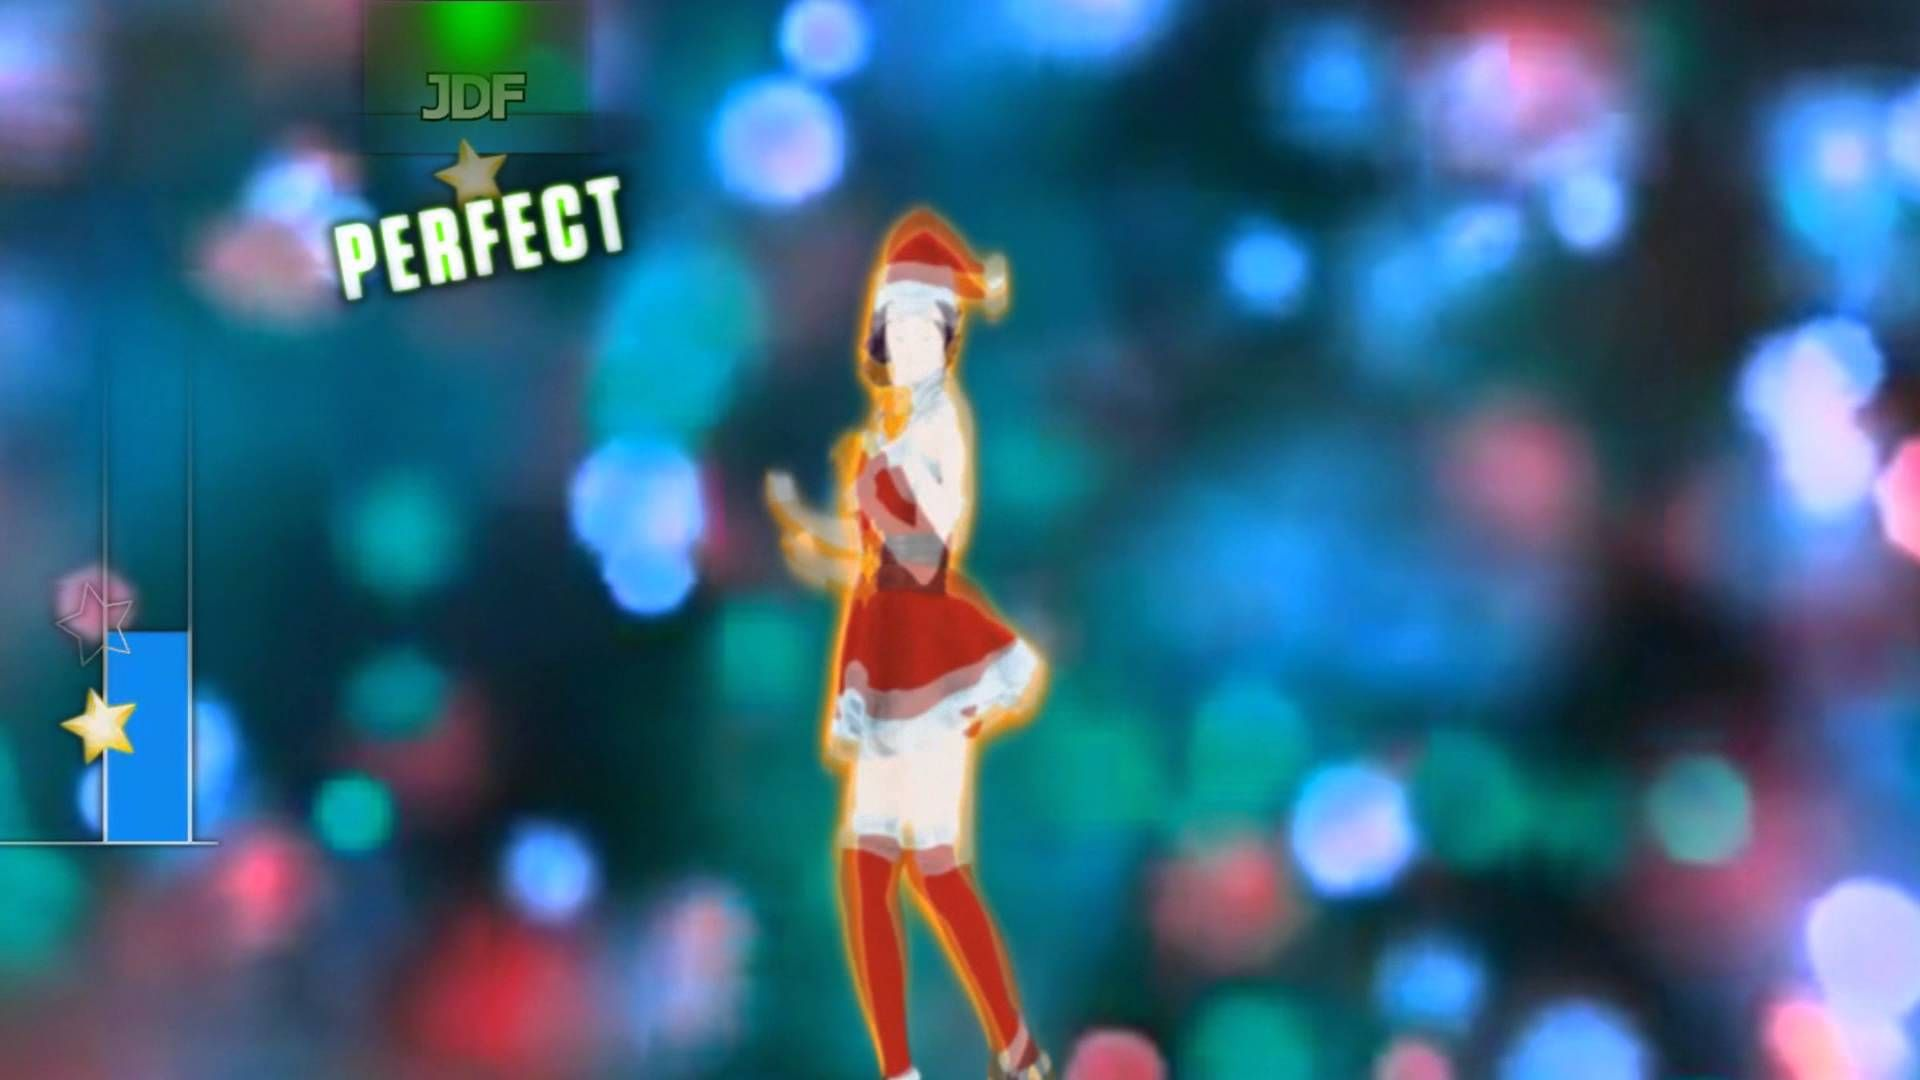 Just Dance 2016(All I Want For Christmas Is You by Mariah